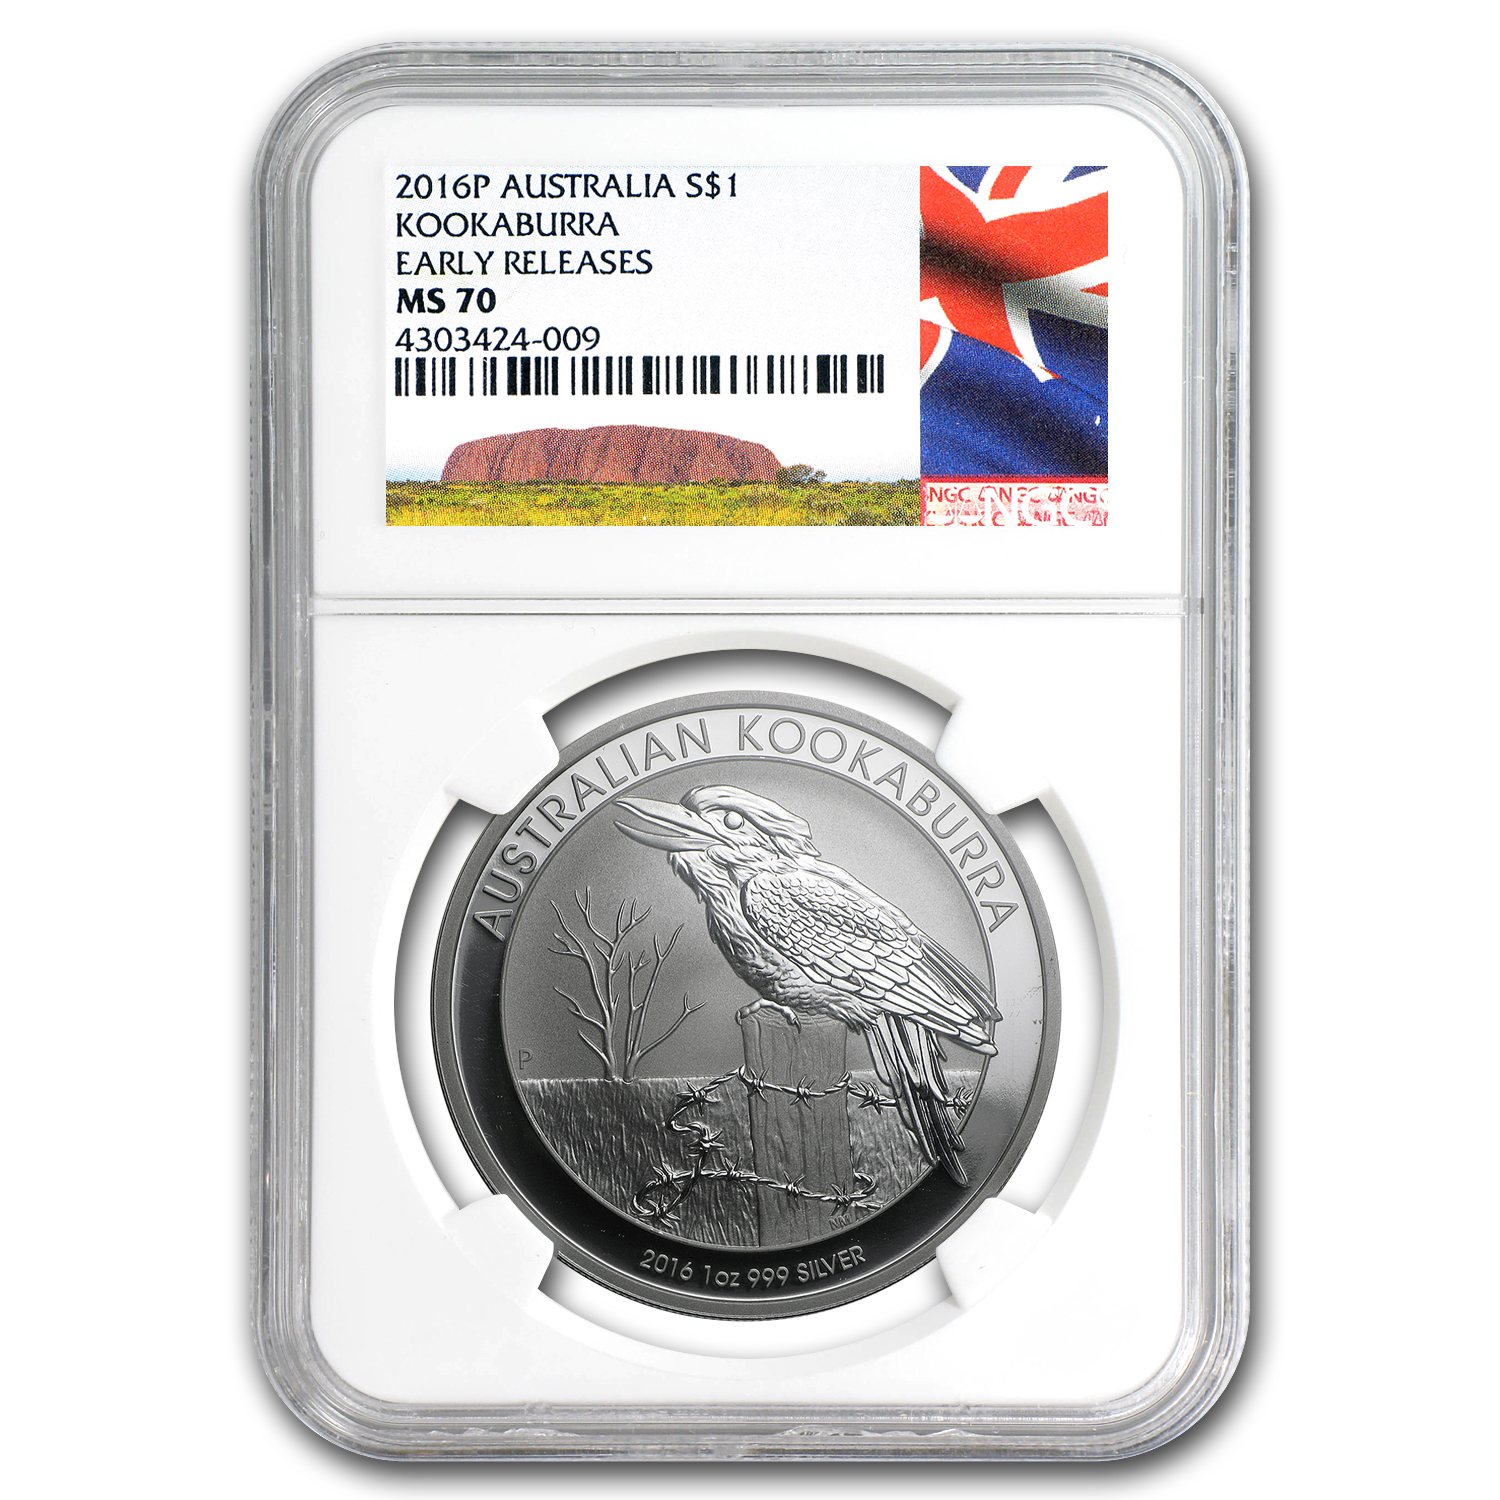 2016 Australia 1 oz Silver Kookaburra MS-70 NGC (Early Release)